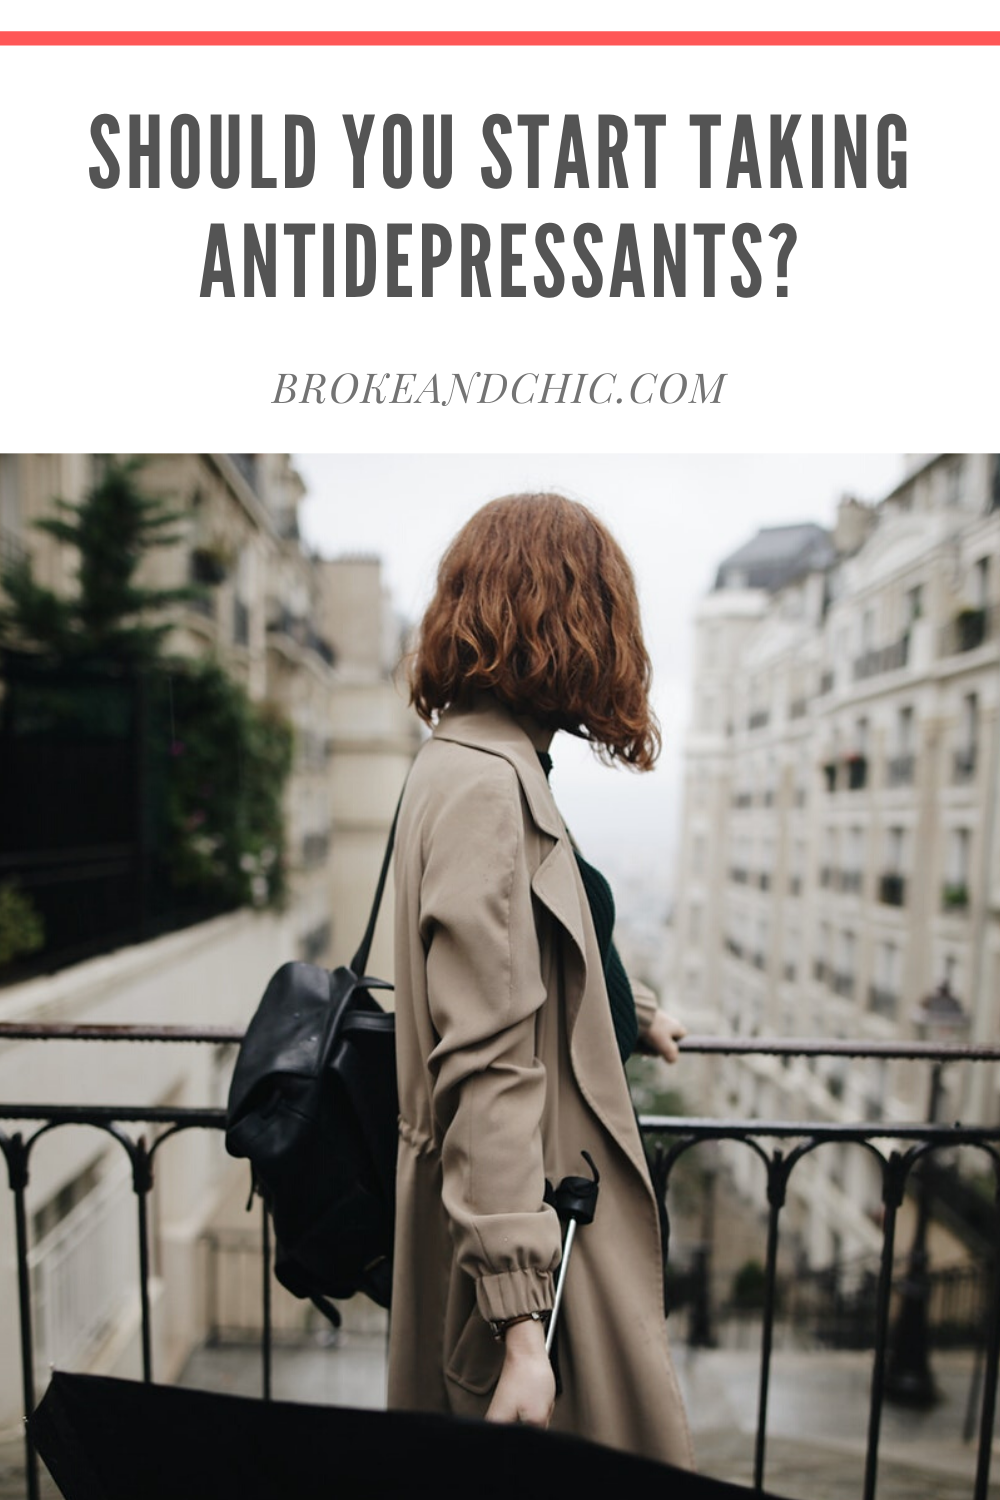 Should You Start Taking Antidepressants?